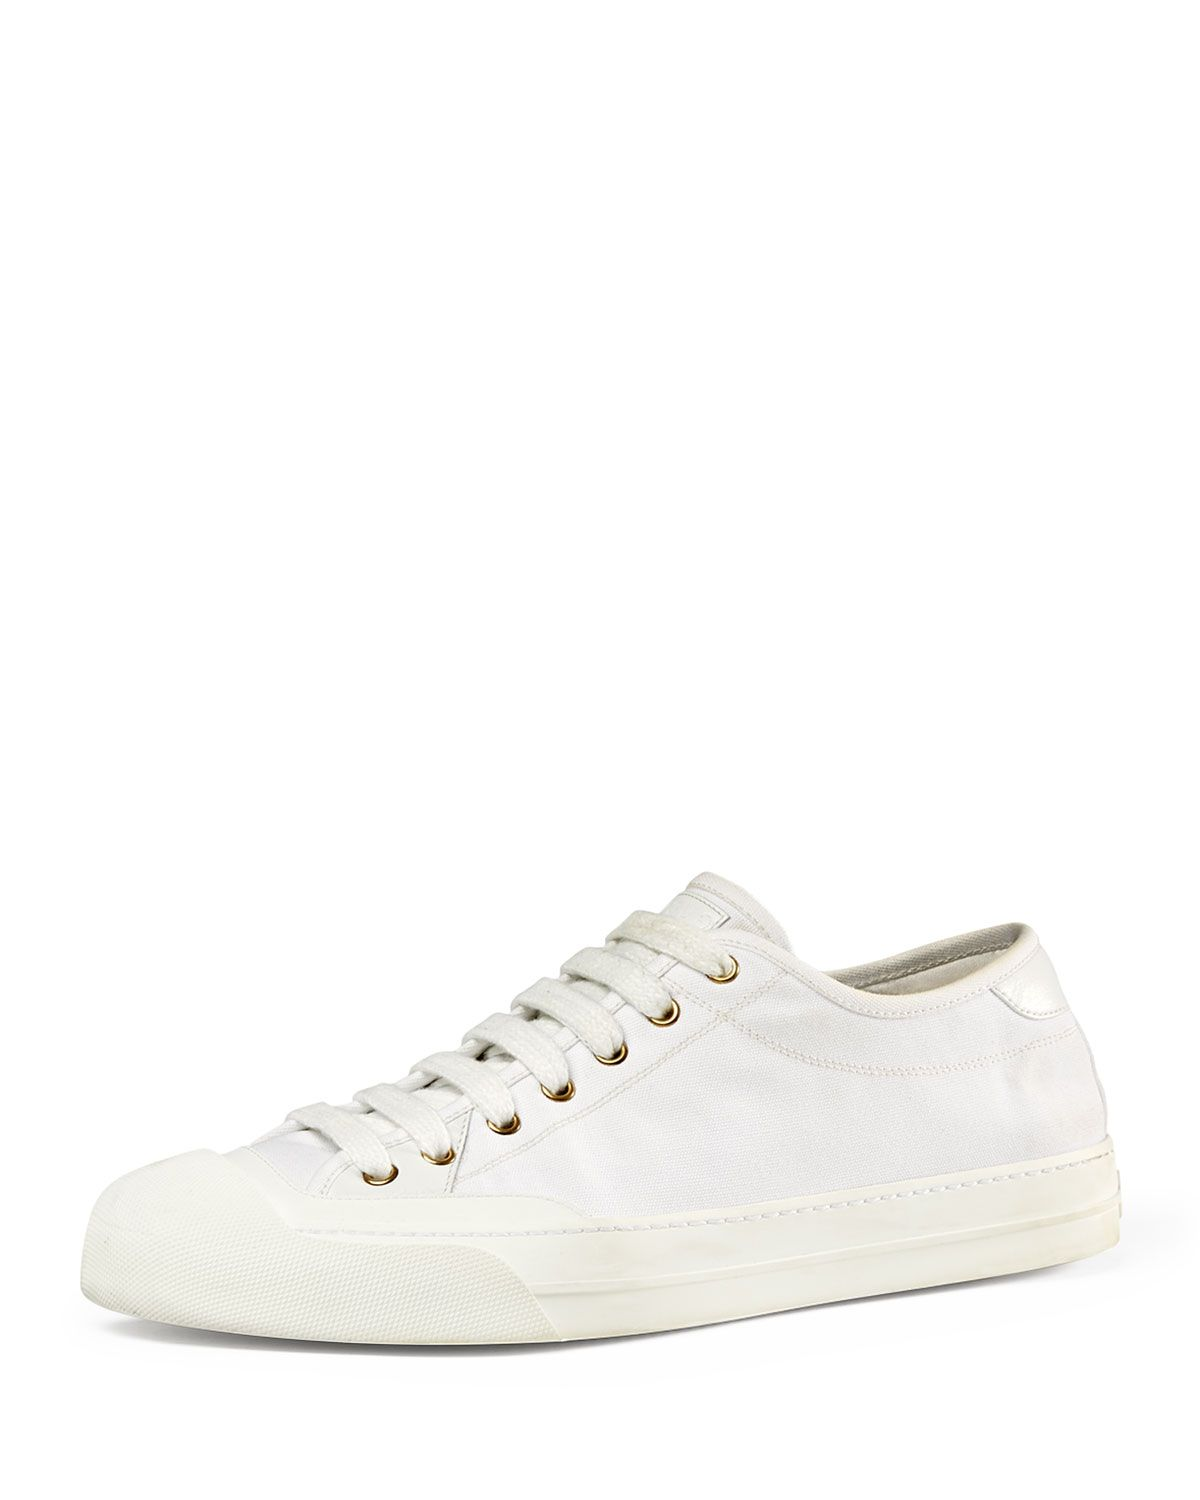 Gucci Canvas Low-Top Sneaker, White